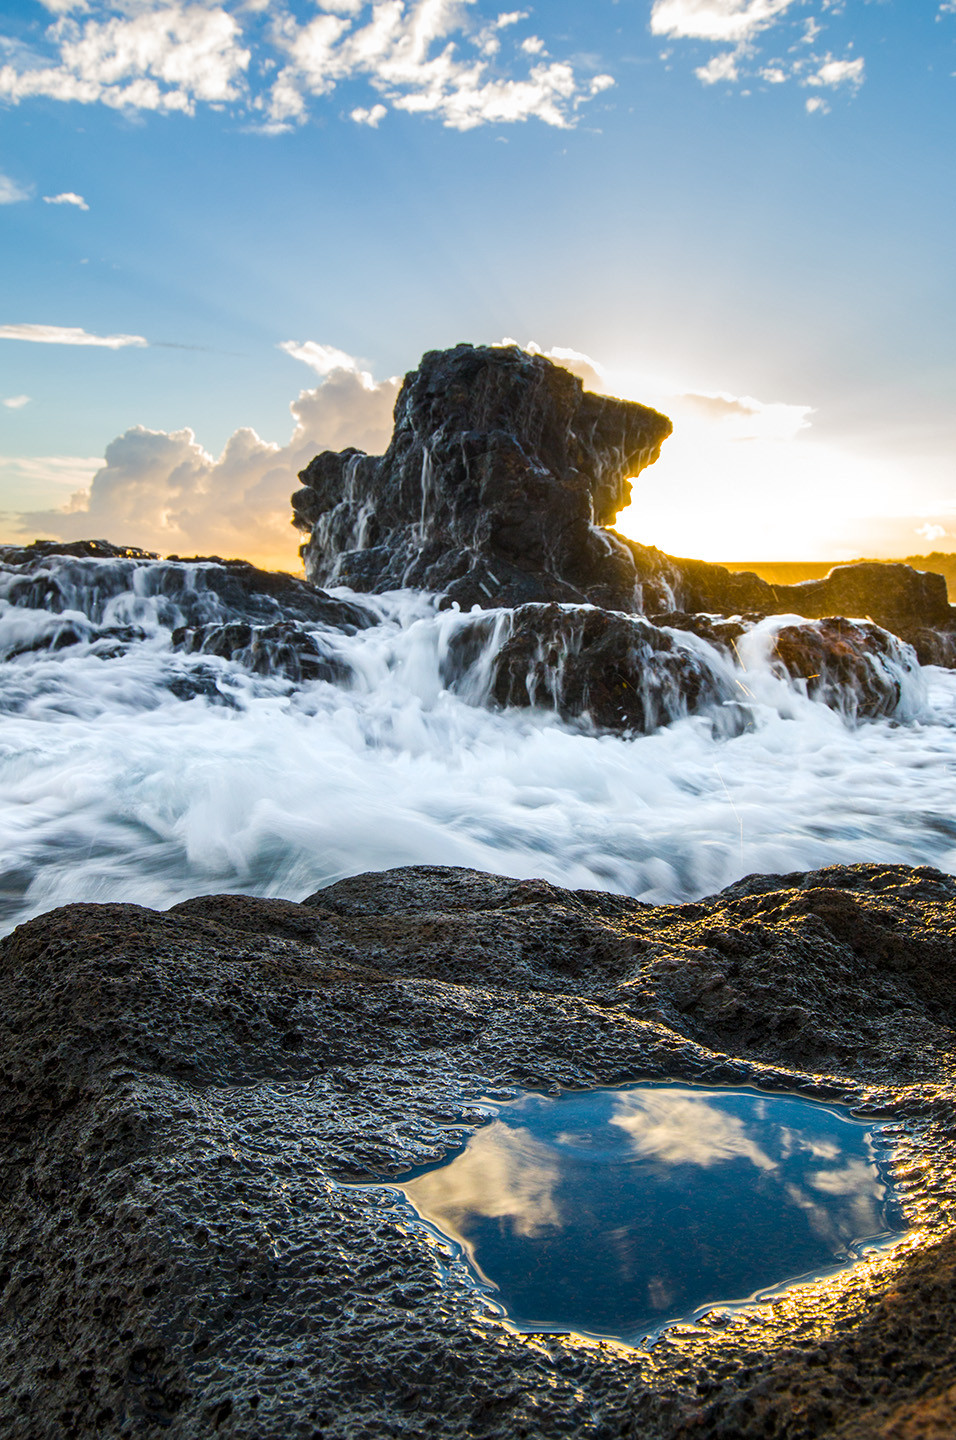 The sun sets behind a rock along the coast of Kauai as the foam of a wave crashes over it.